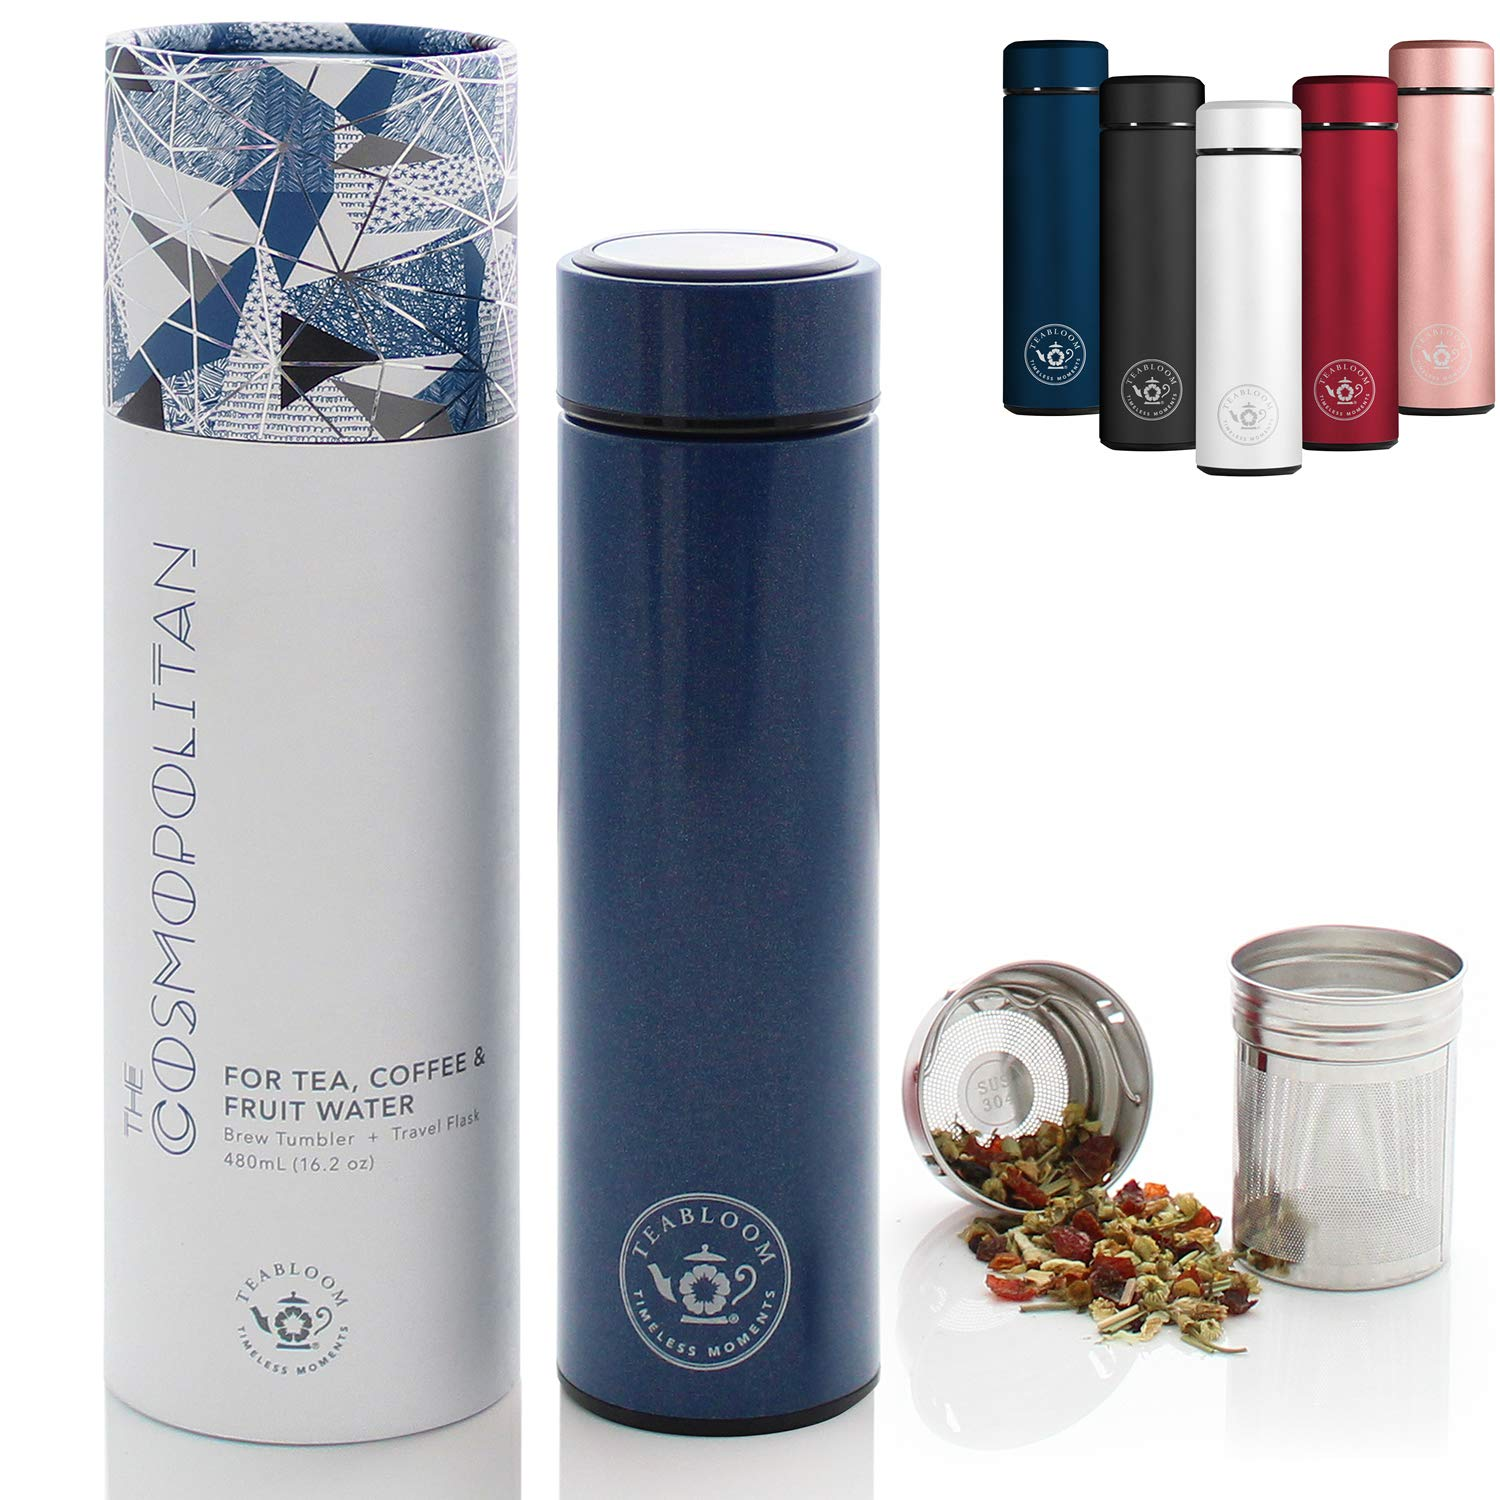 Teabloom All-Purpose Beverage Tumbler - 16 oz - 480 ml - Brushed Metal Insulated Water Bottle/Tea Flask/Cold Brew Coffee Mug - Extra-Fine Two-Way Infuser Travel Bottle - Night Blue